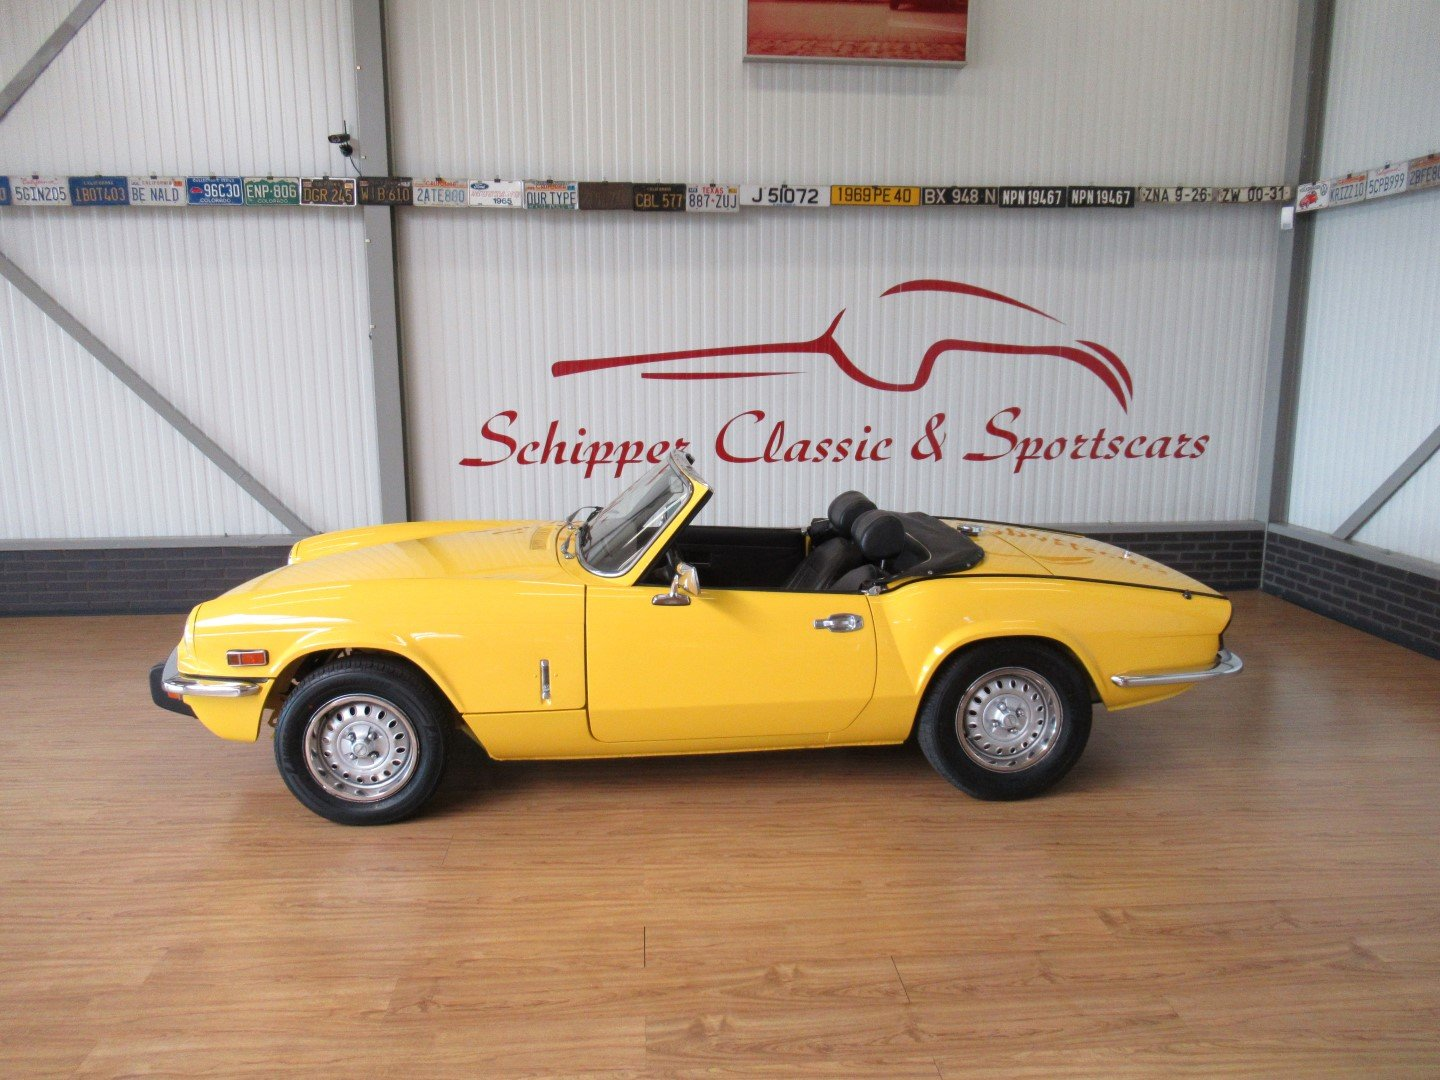 1973 Triumph Spitfire MK IV Roadster For Sale (picture 2 of 6)